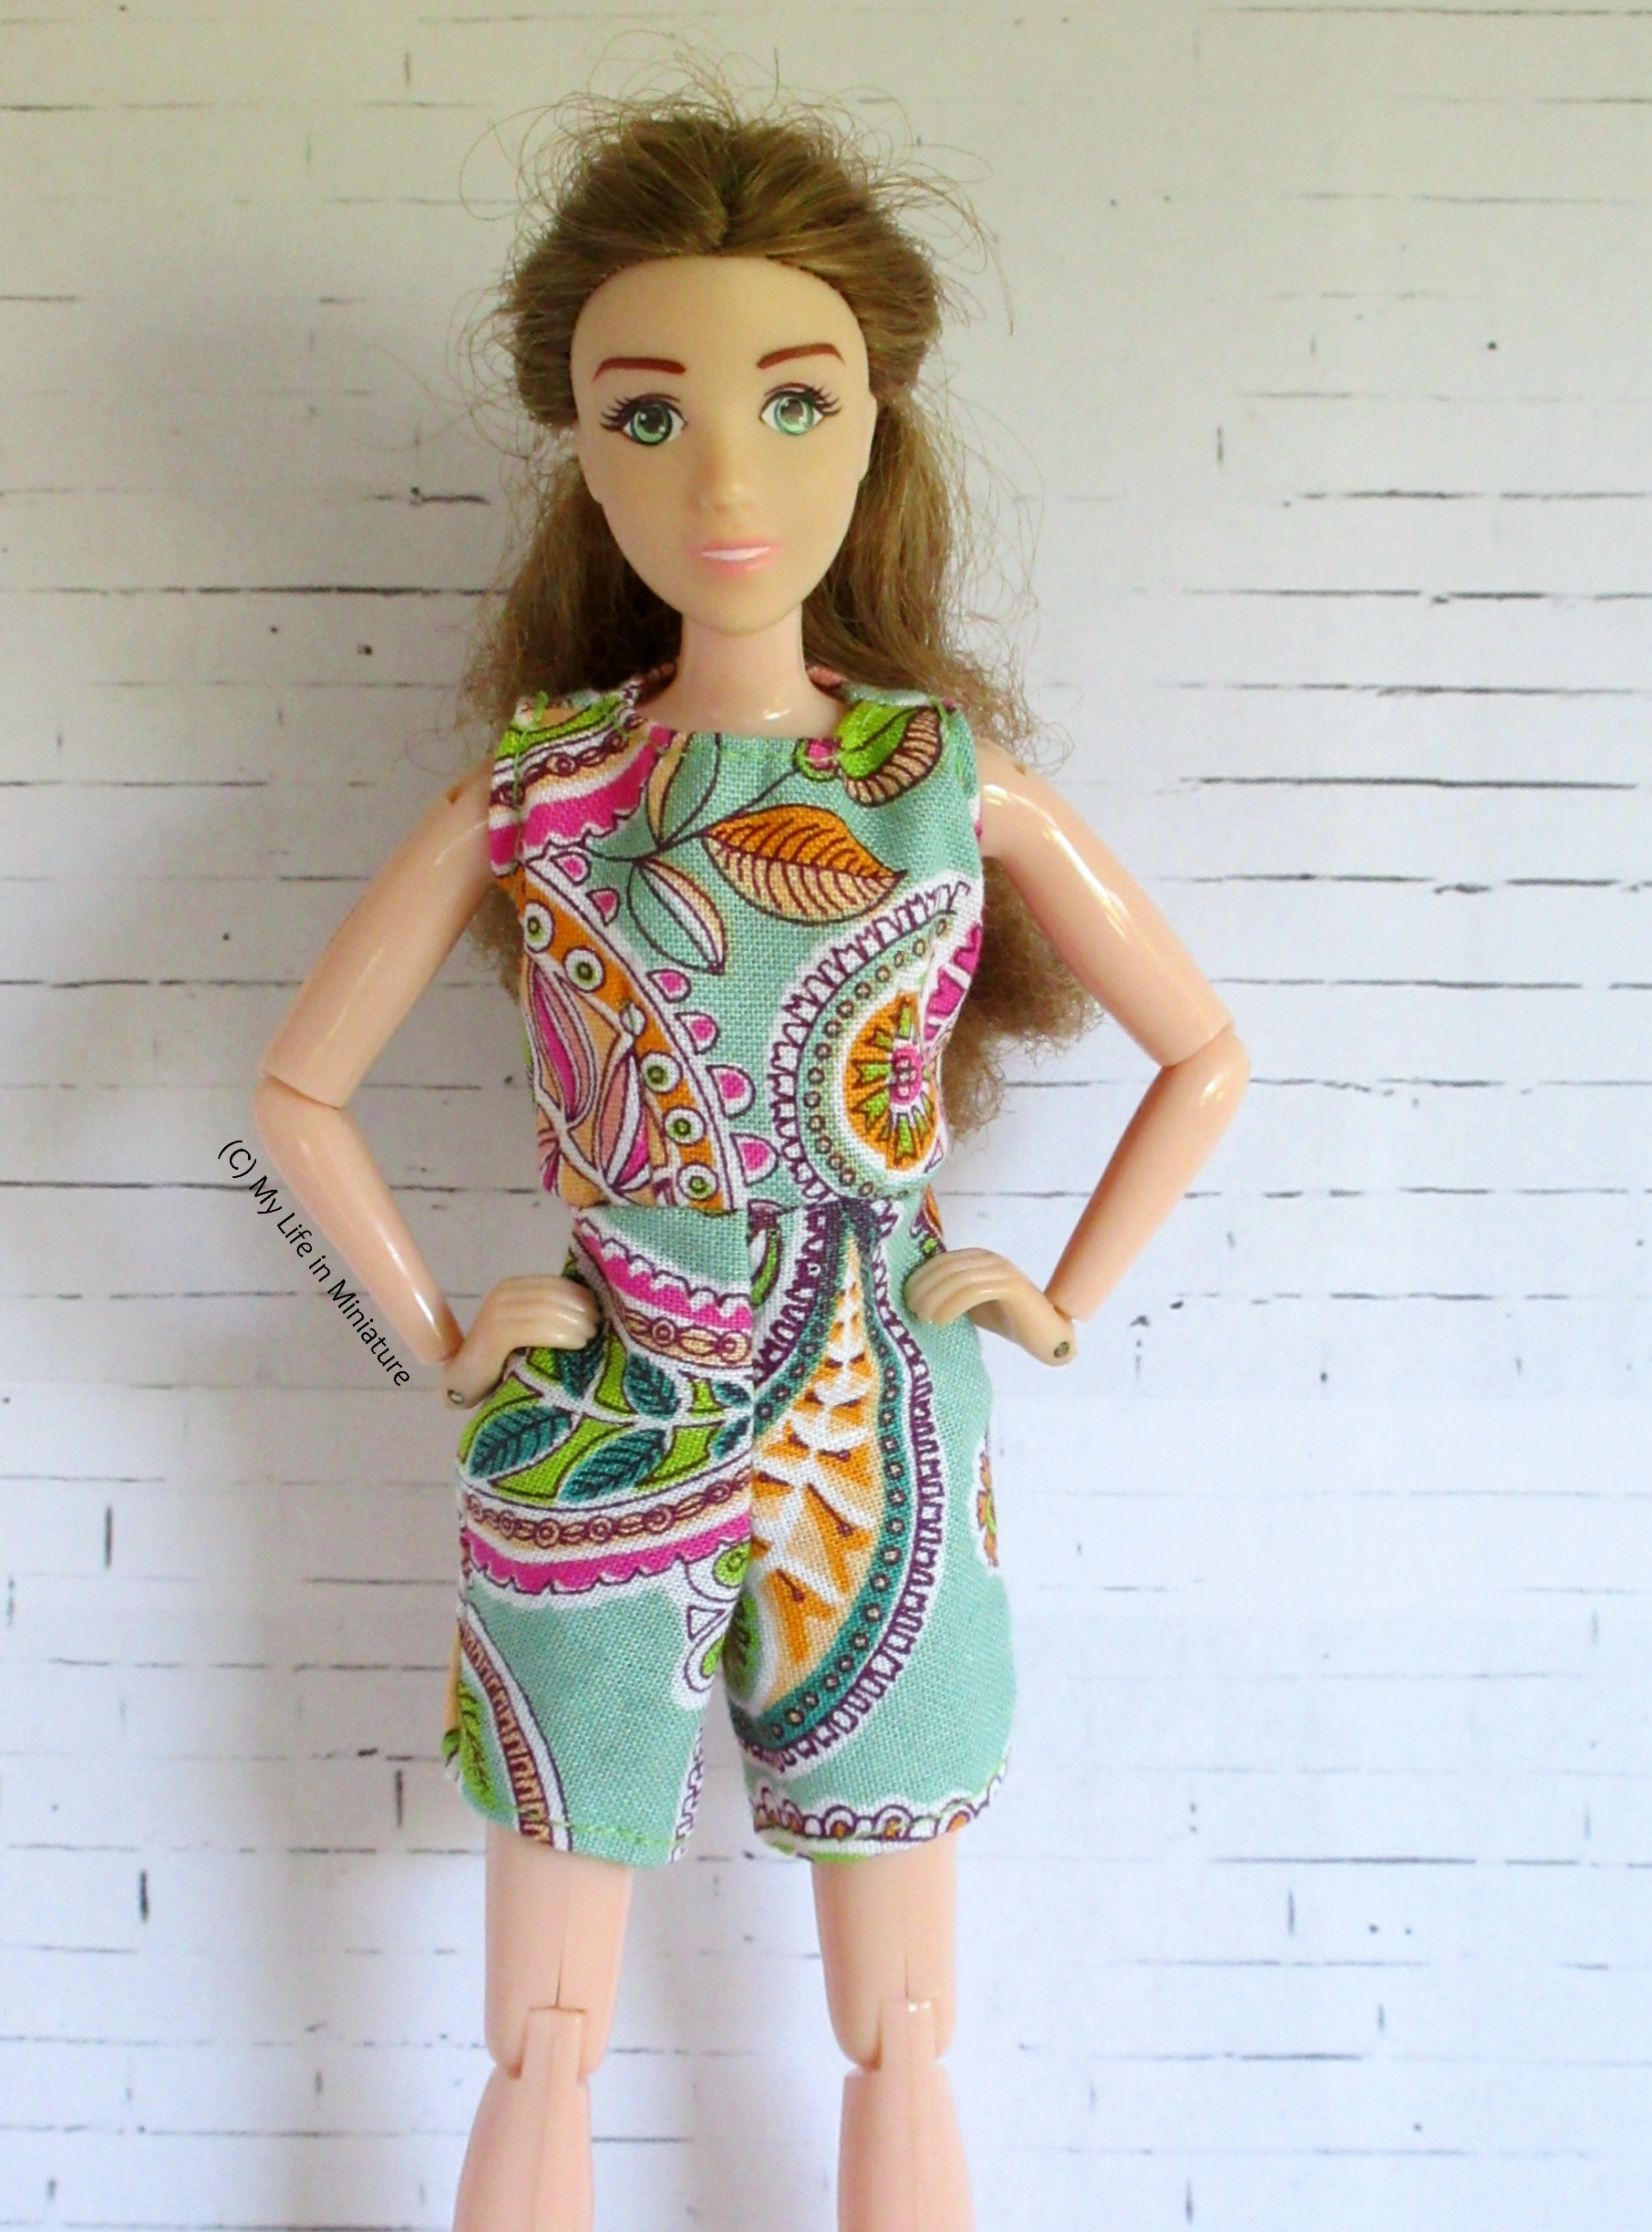 Sarah wears her new playsuit against a white brick background, hands on hips. The fabric is pale green with pink, green and orange paisleys on.